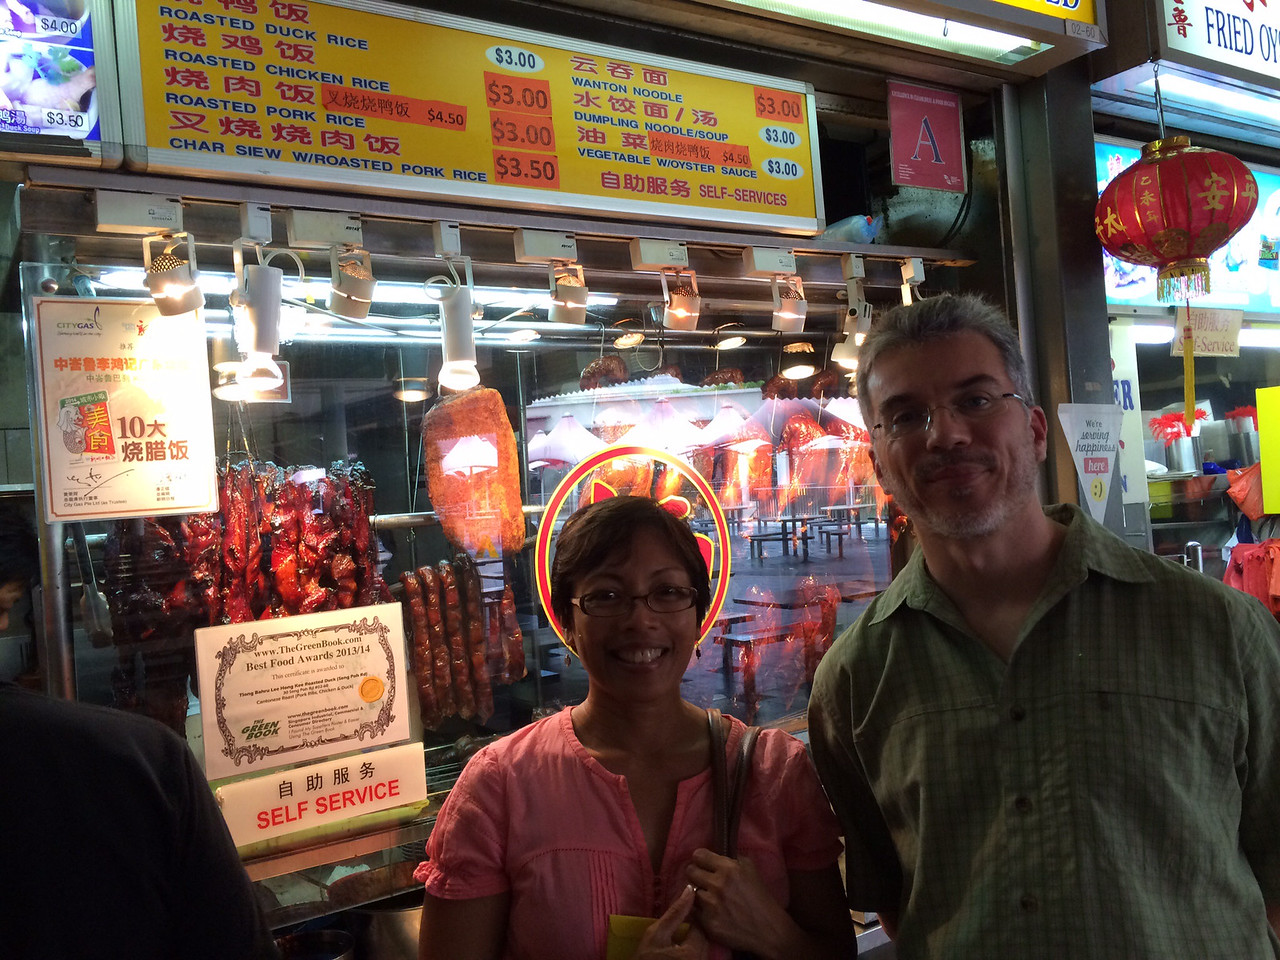 On the day we arrived in Singapore, Walter and Vanessa took us to one of the popular hawker centers for lunch. Had some roasted duck at this hawker stand. As you can see, you can have a nice meal for S$3.00.